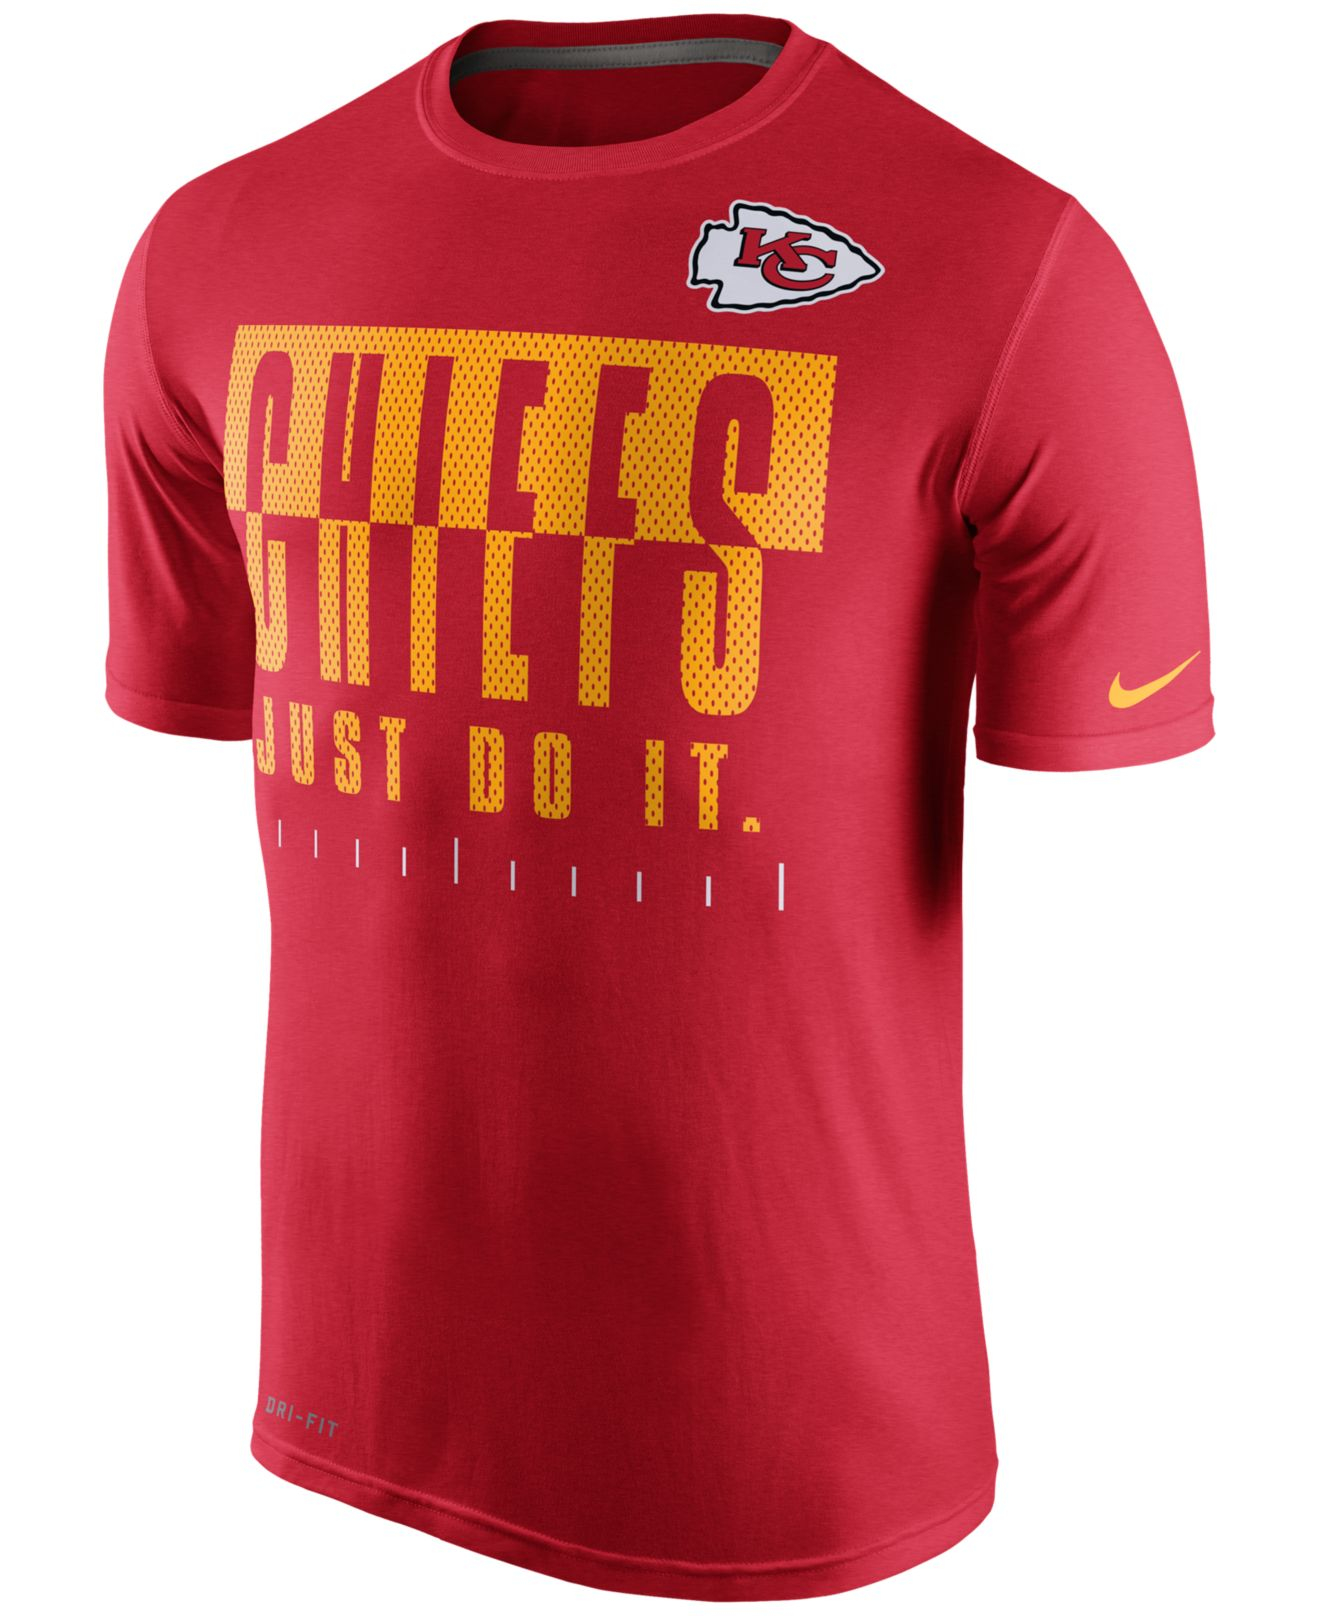 Nike T Shirts Just Do It Nike Men's Kansas City...